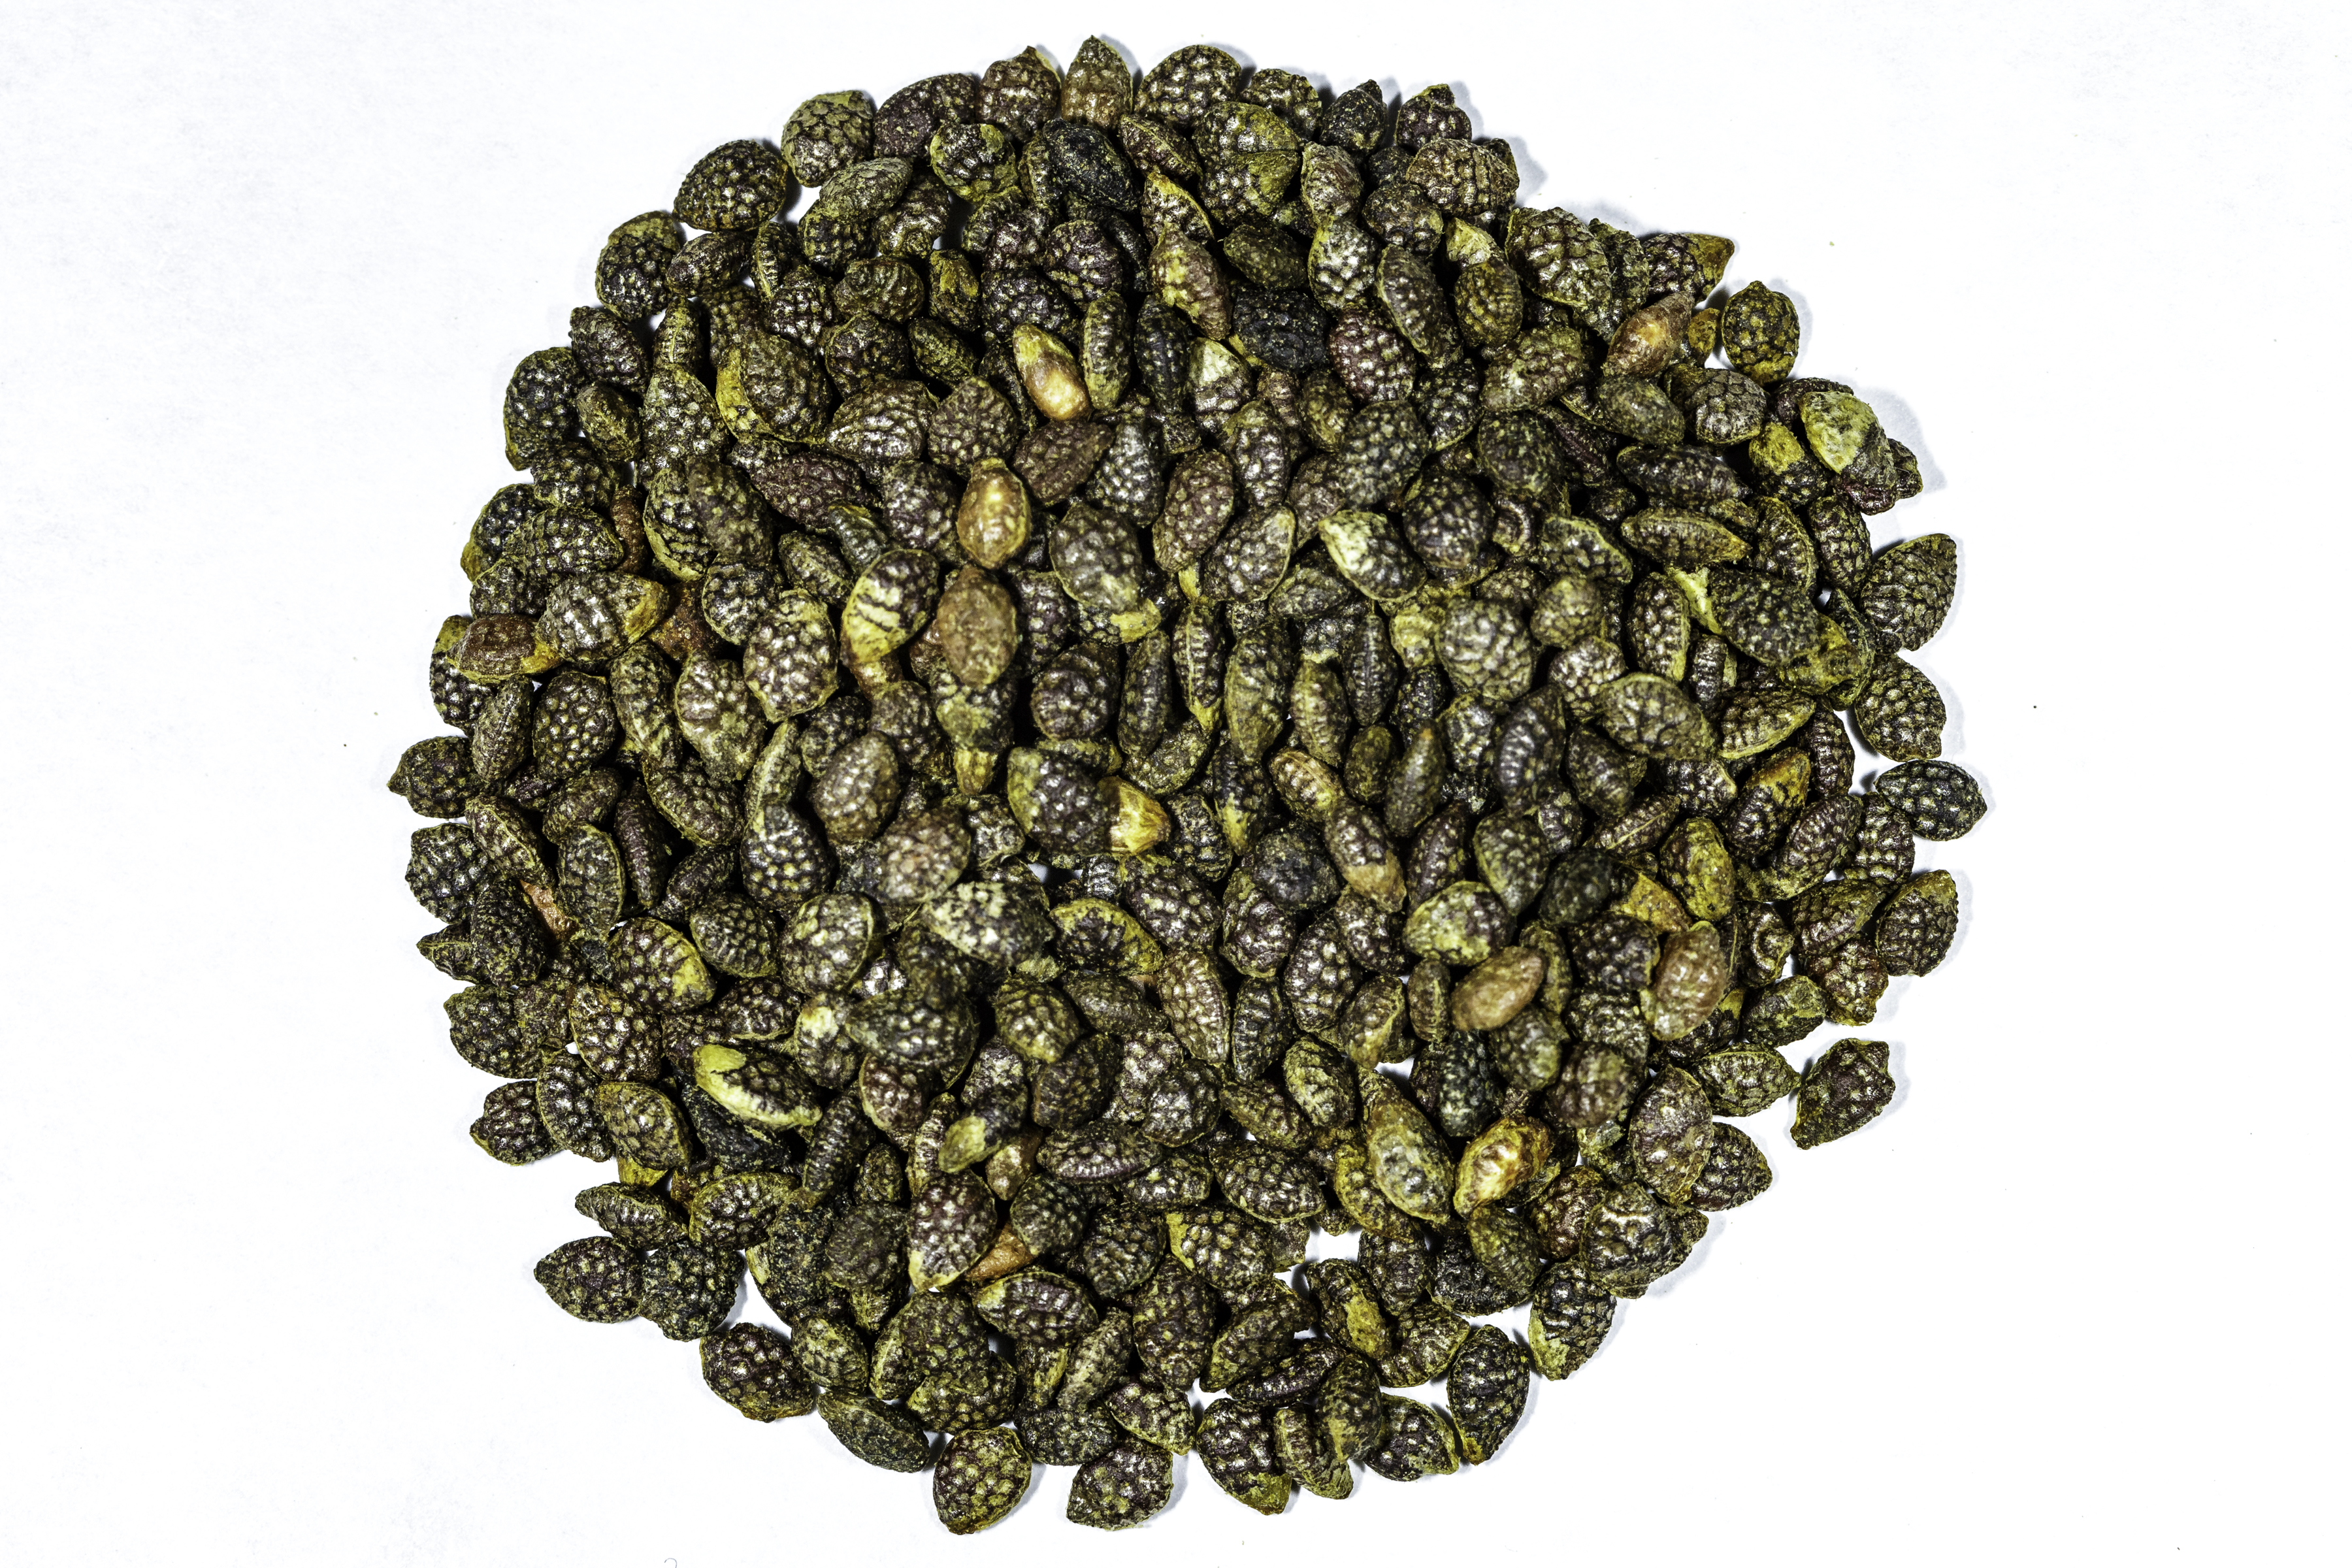 A top down view of a small pile of Passiflora caerulea (Blue Passionflower) seeds.